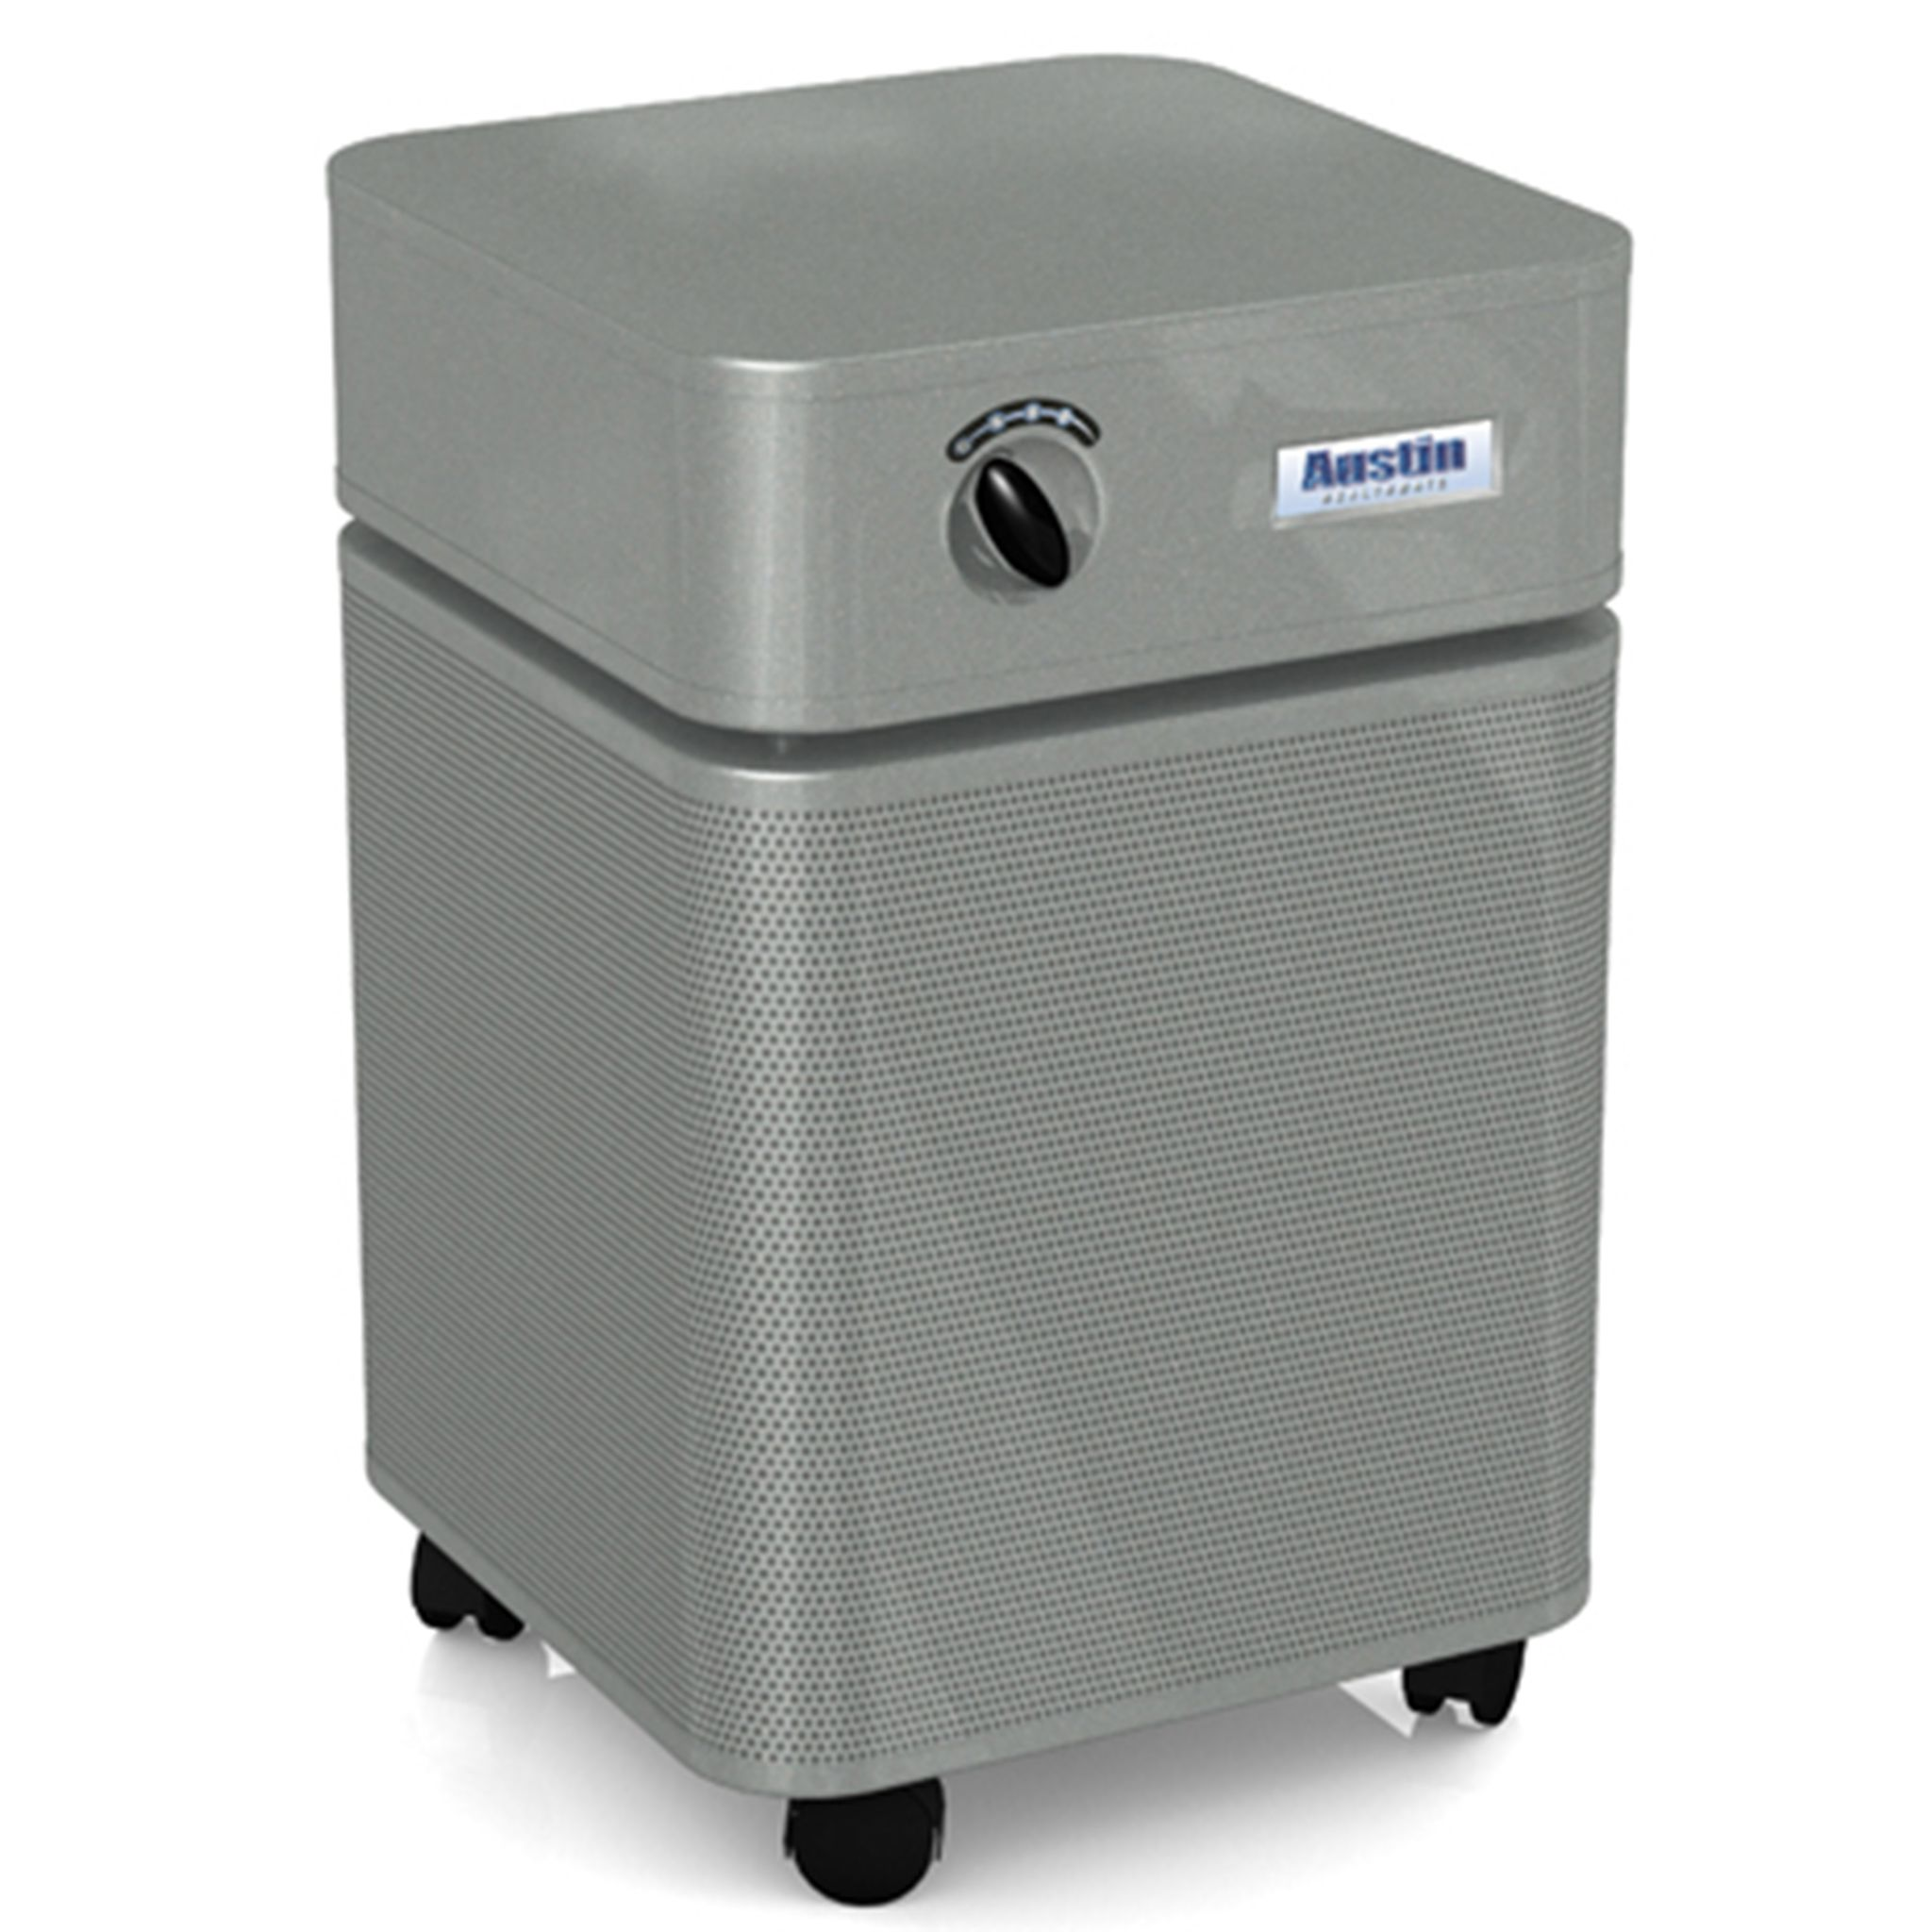 The Austin Air Healthmate in Silver Austin air purifier